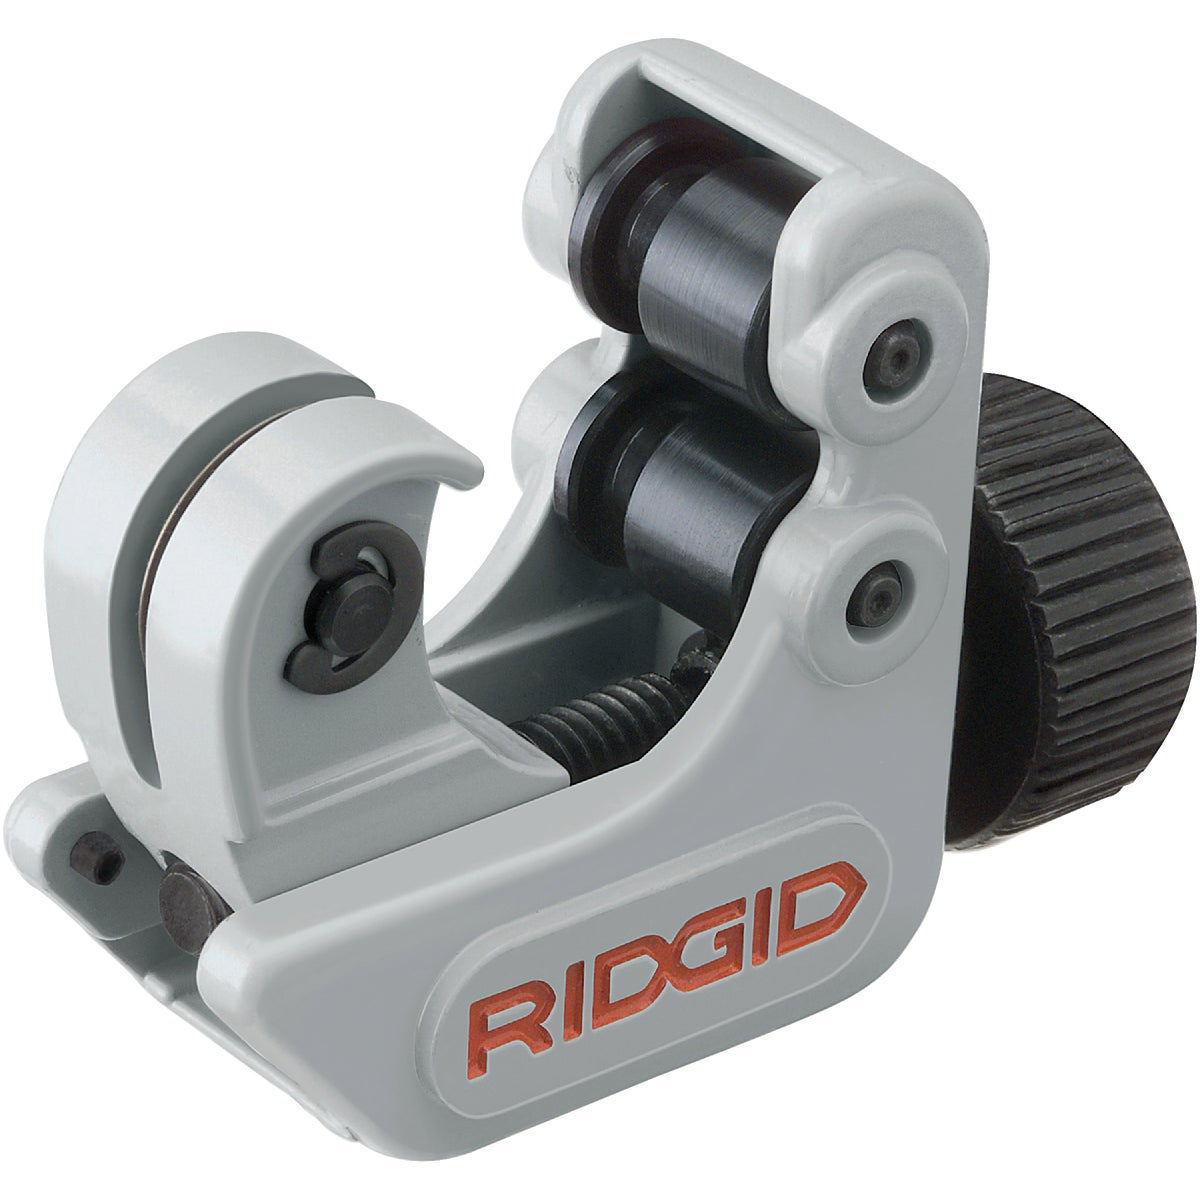 101 TUBING CUTTER - 40617 by Ridge Tool Co